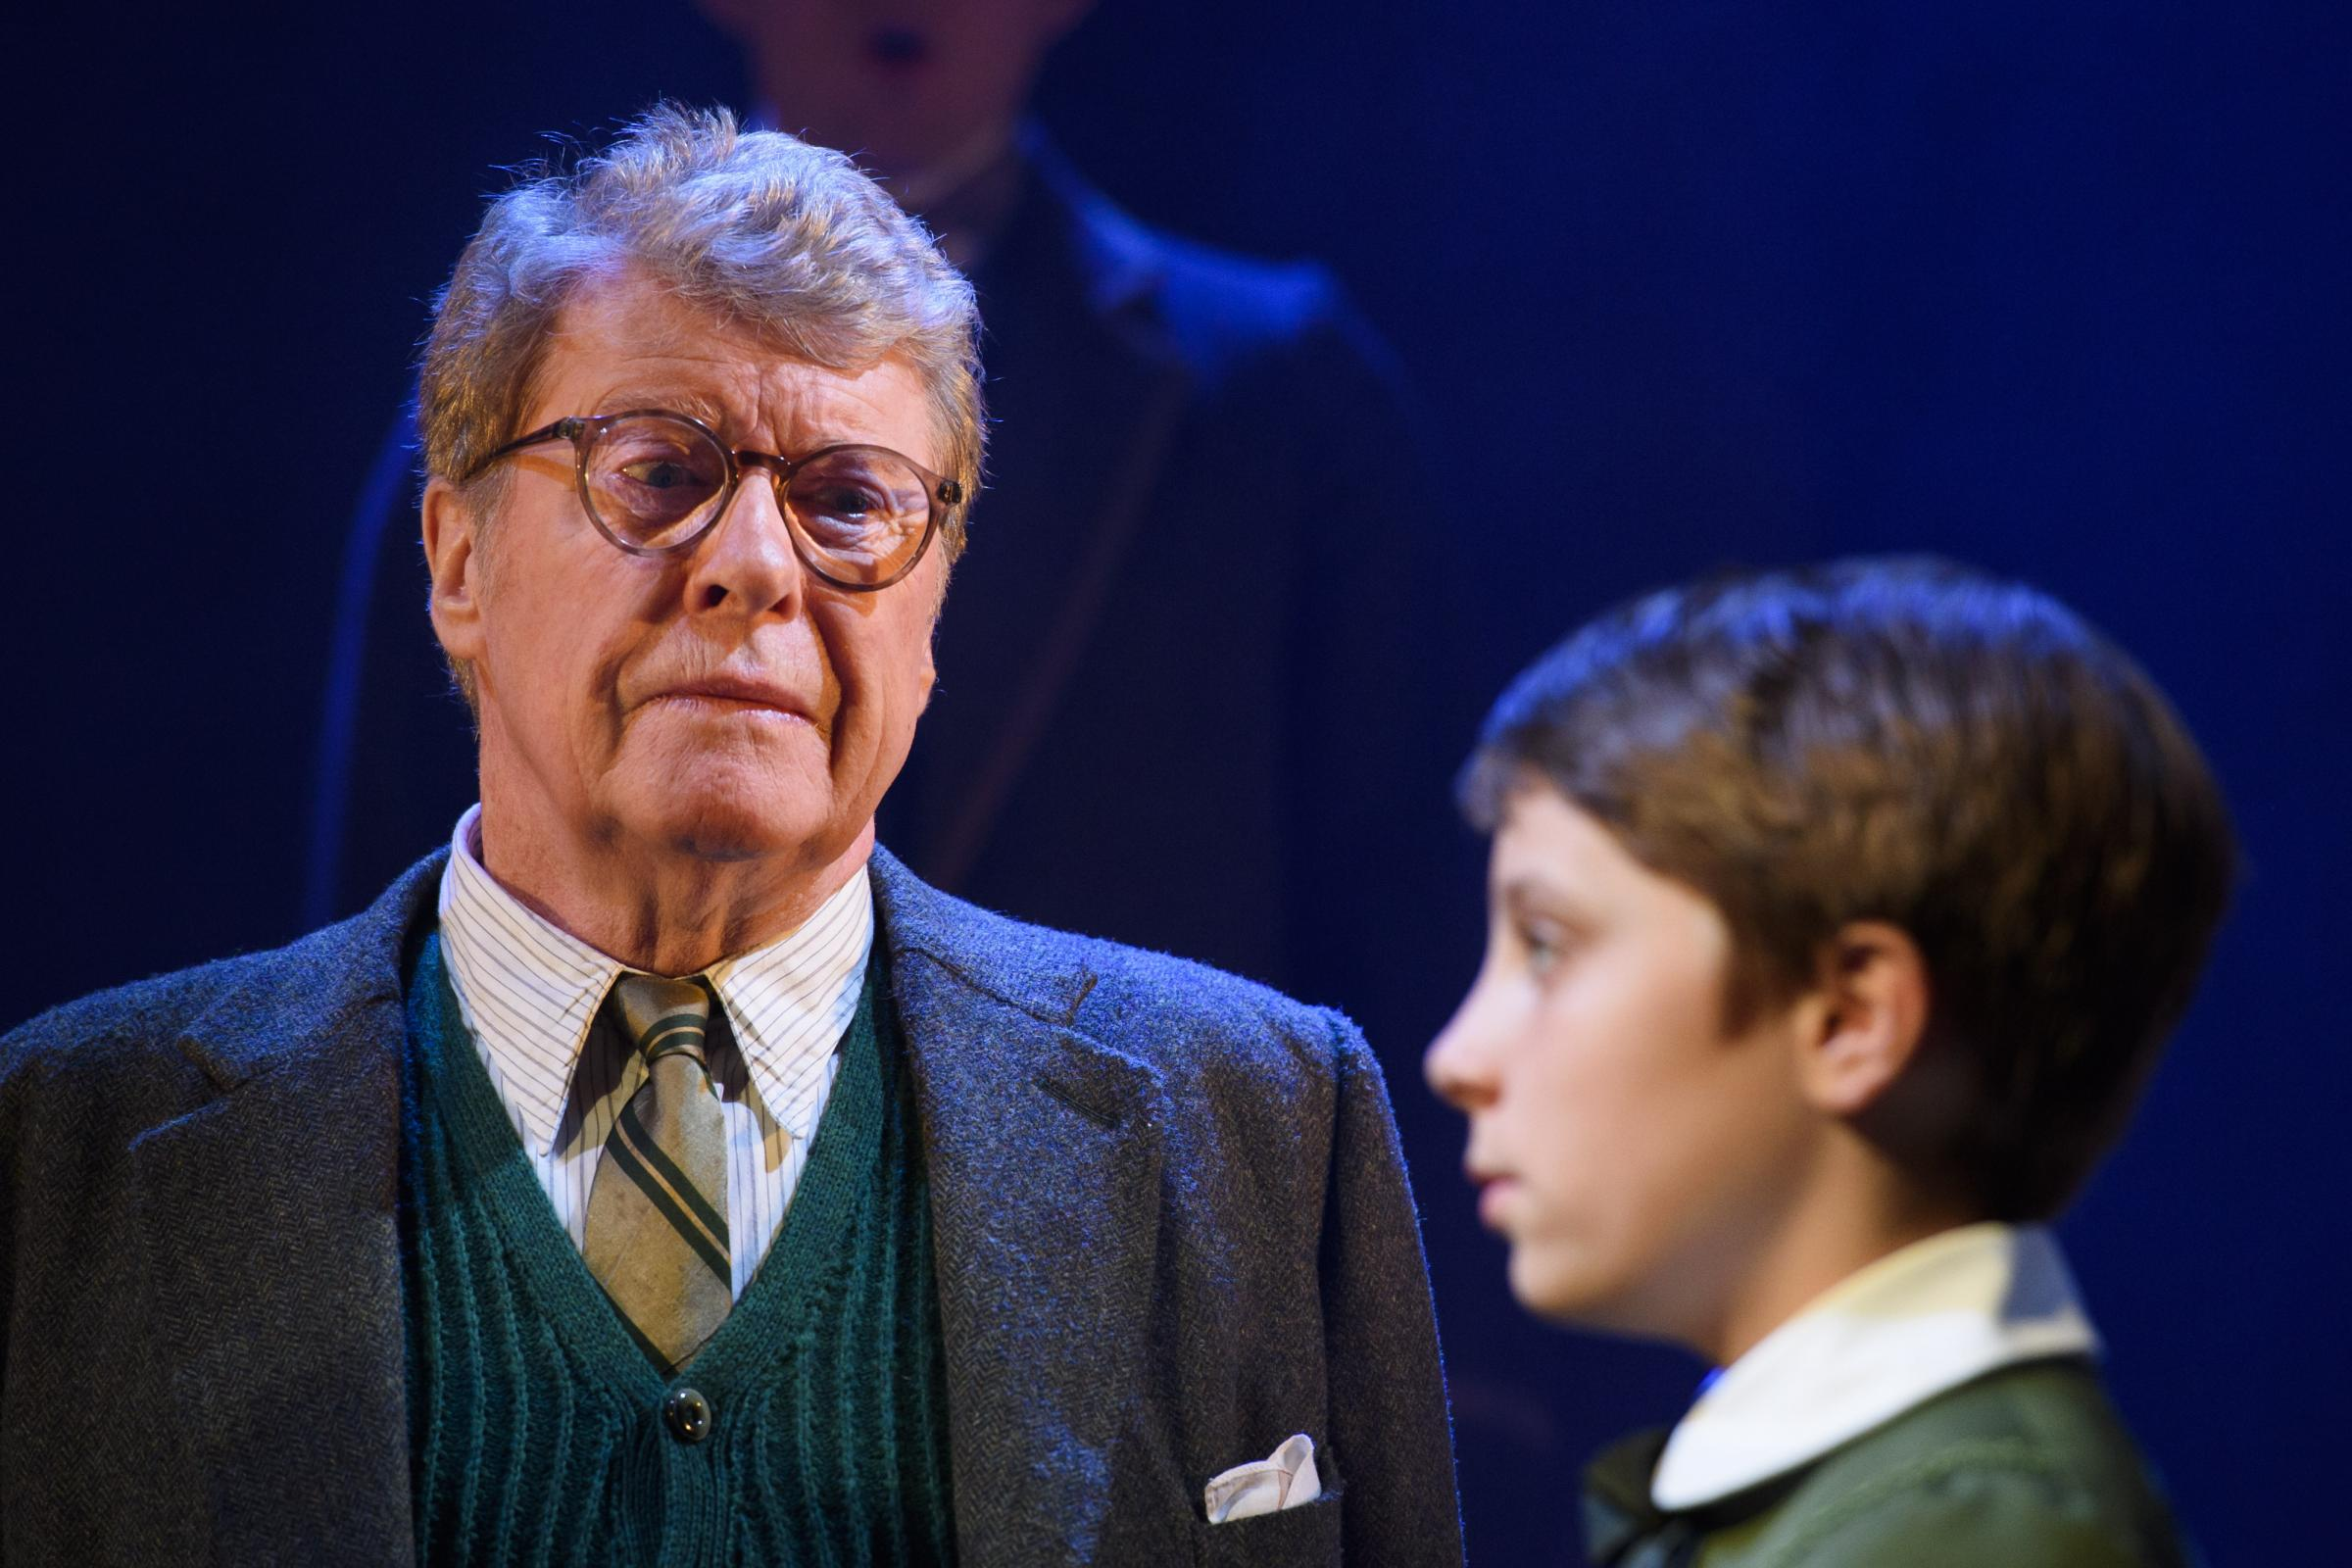 BATTLE: Actor Michael Crawford, pictured at the Apollo Theatre in London in March 2016, has spoken publicly about his battle with ME 									Picture: MATT CROSSICK/PA